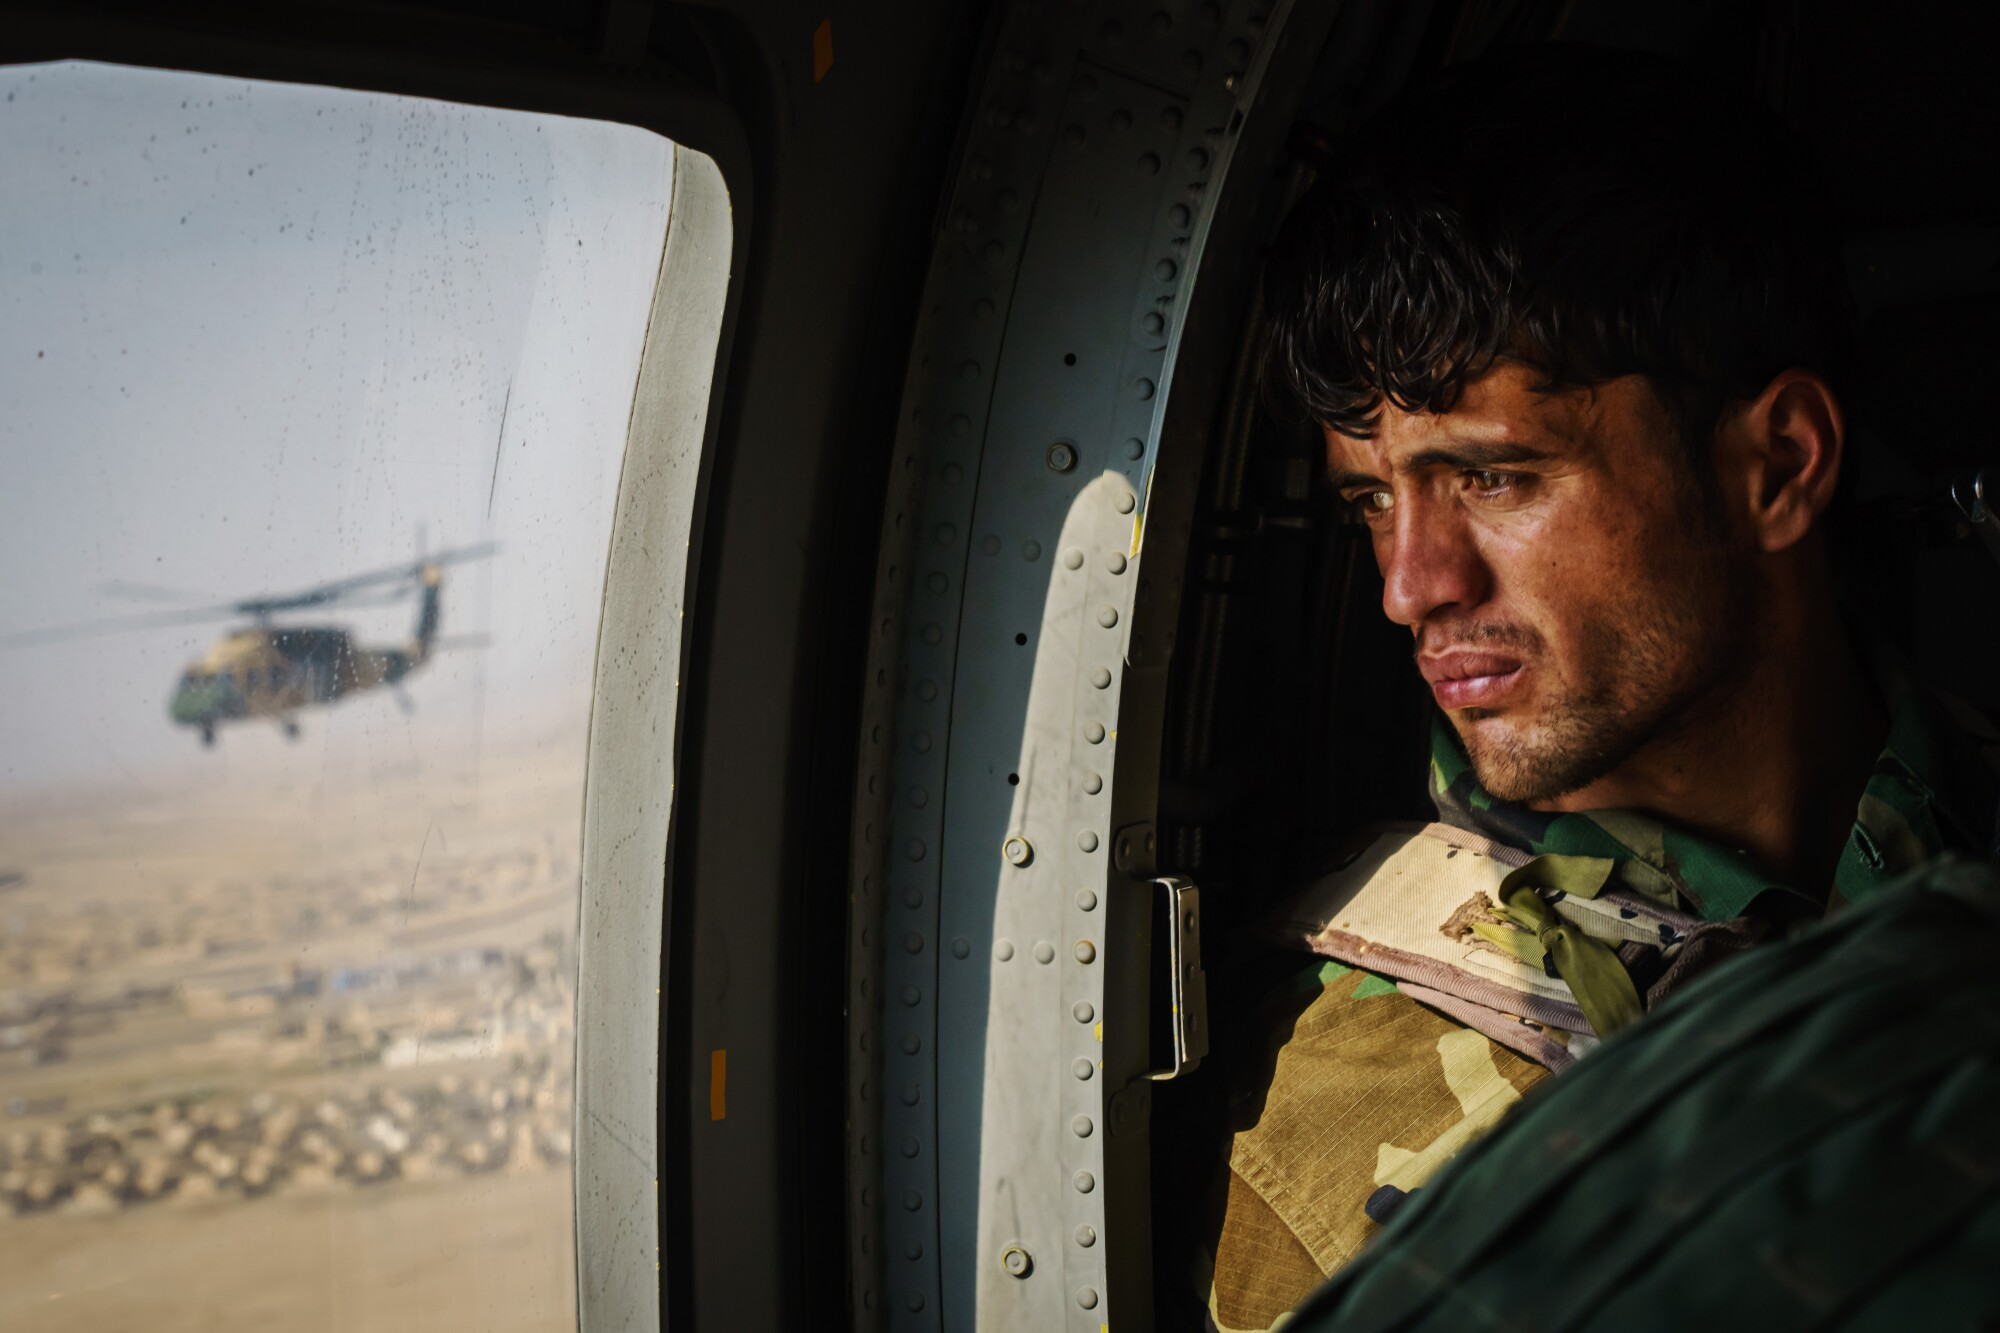 A soldier surveys the terrain out the window during a resupply flight on a UH-60 Black Hawk